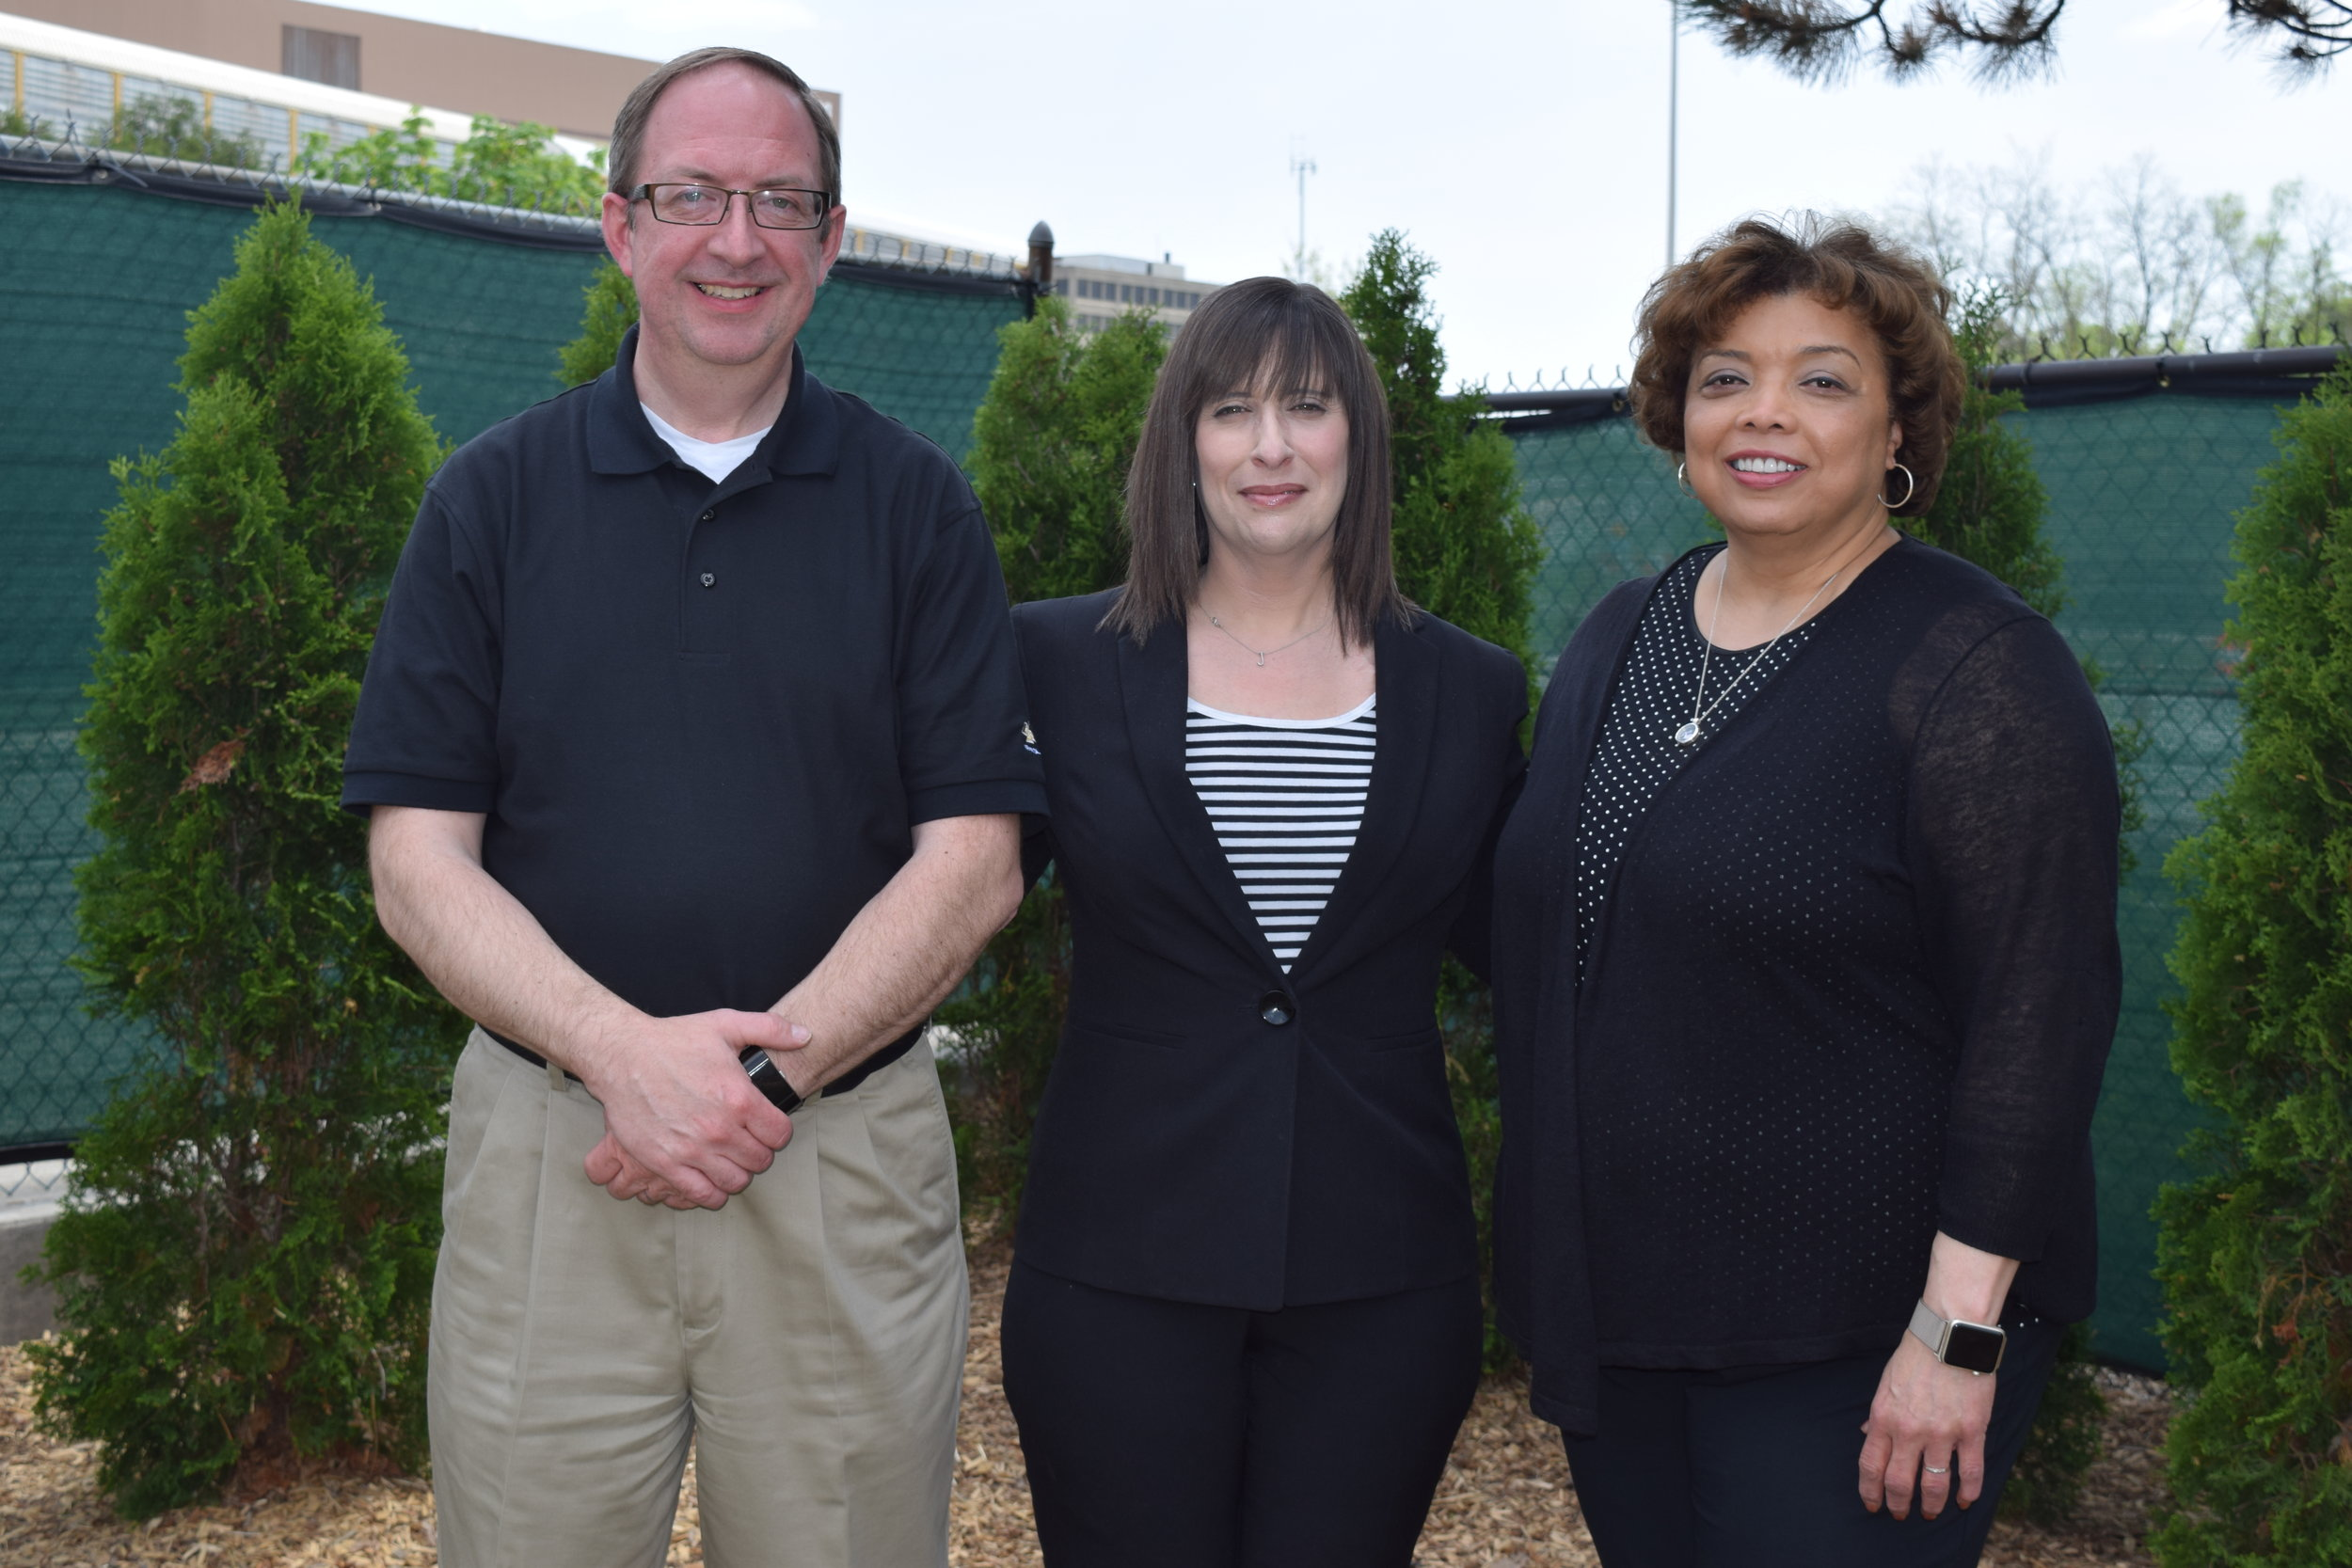 Tom W. Wickham, manager of Plant Communications,Oakland Family Services President/CEO Jaimie Clayton, and Joya L. Shepard, personnel director at General Motors'Orion Assembly and Pontiac Stamping plants.